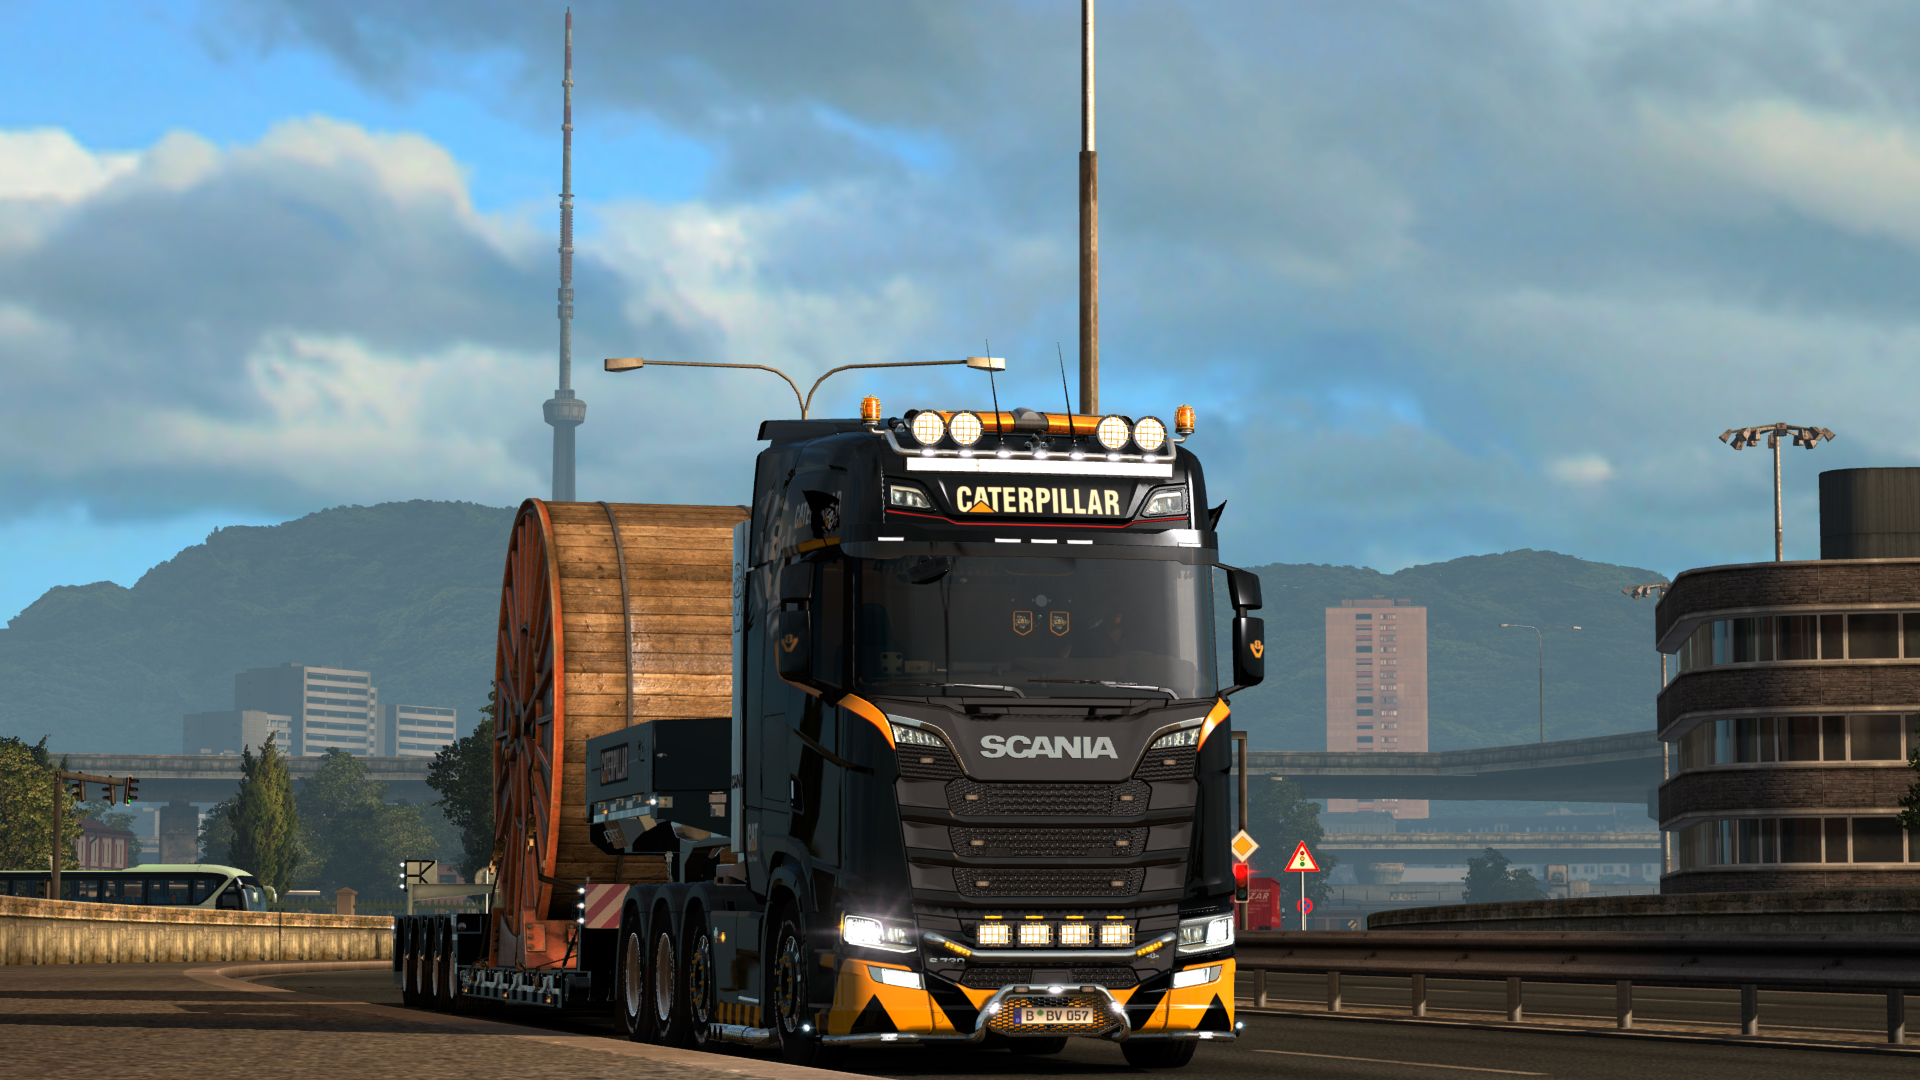 Scania Next Gen Caterpillar - Euro Truck Simulator 2